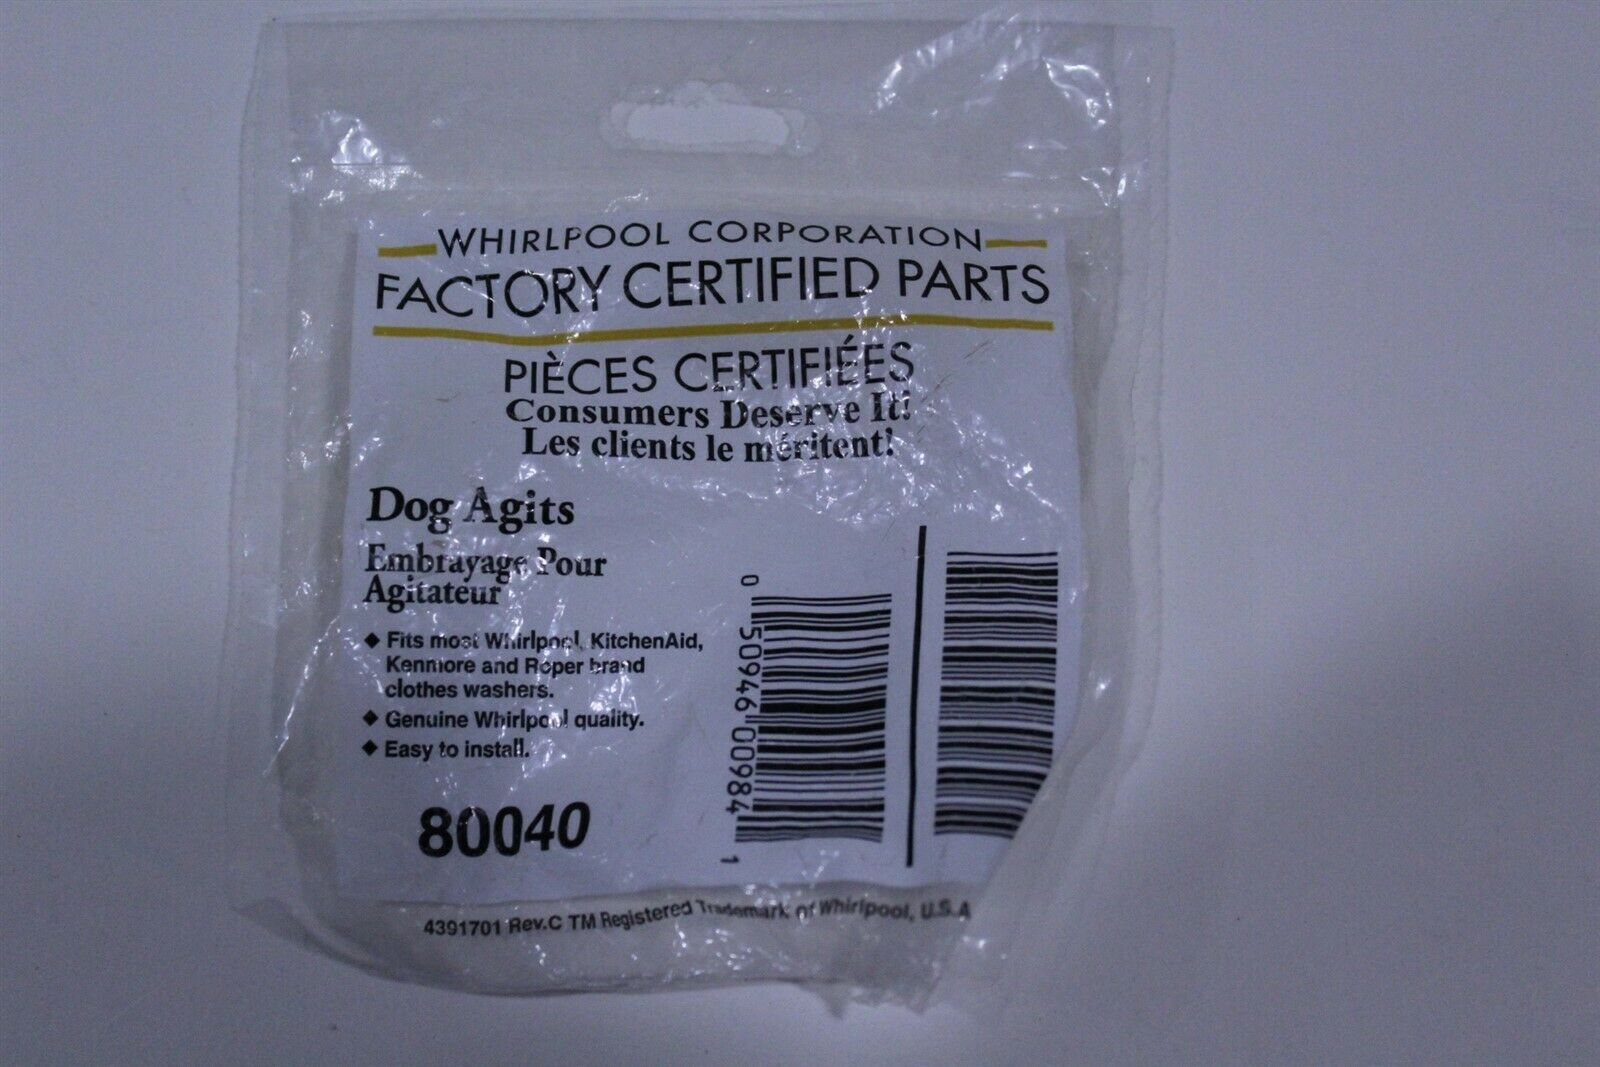 Washer Agitator Dogs Certified Whirlpool Parts 80040 4 pack